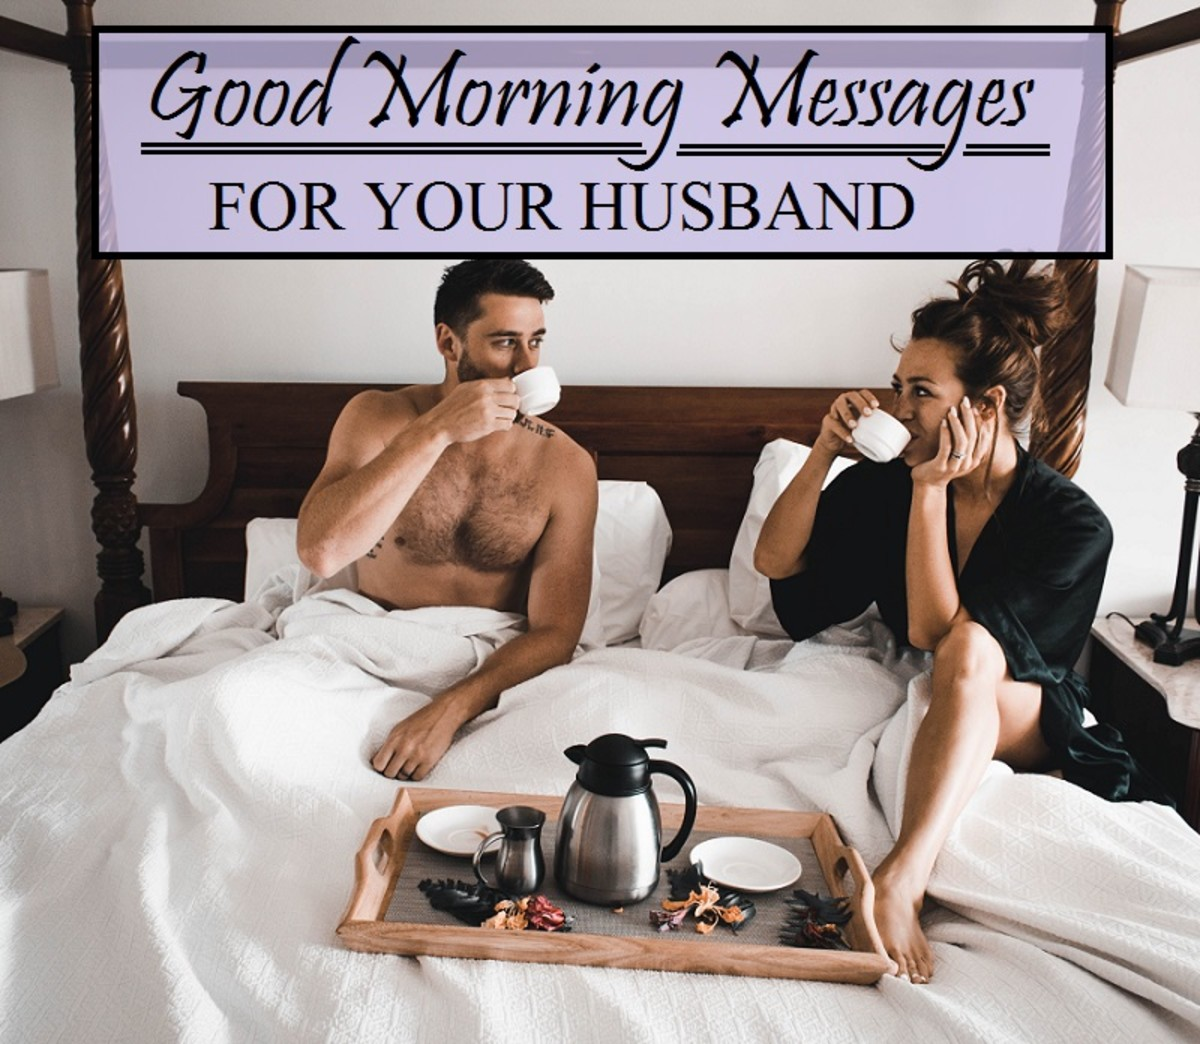 If you're not quite sure how to surprise your beloved husband in the morning, here's some inspiration!